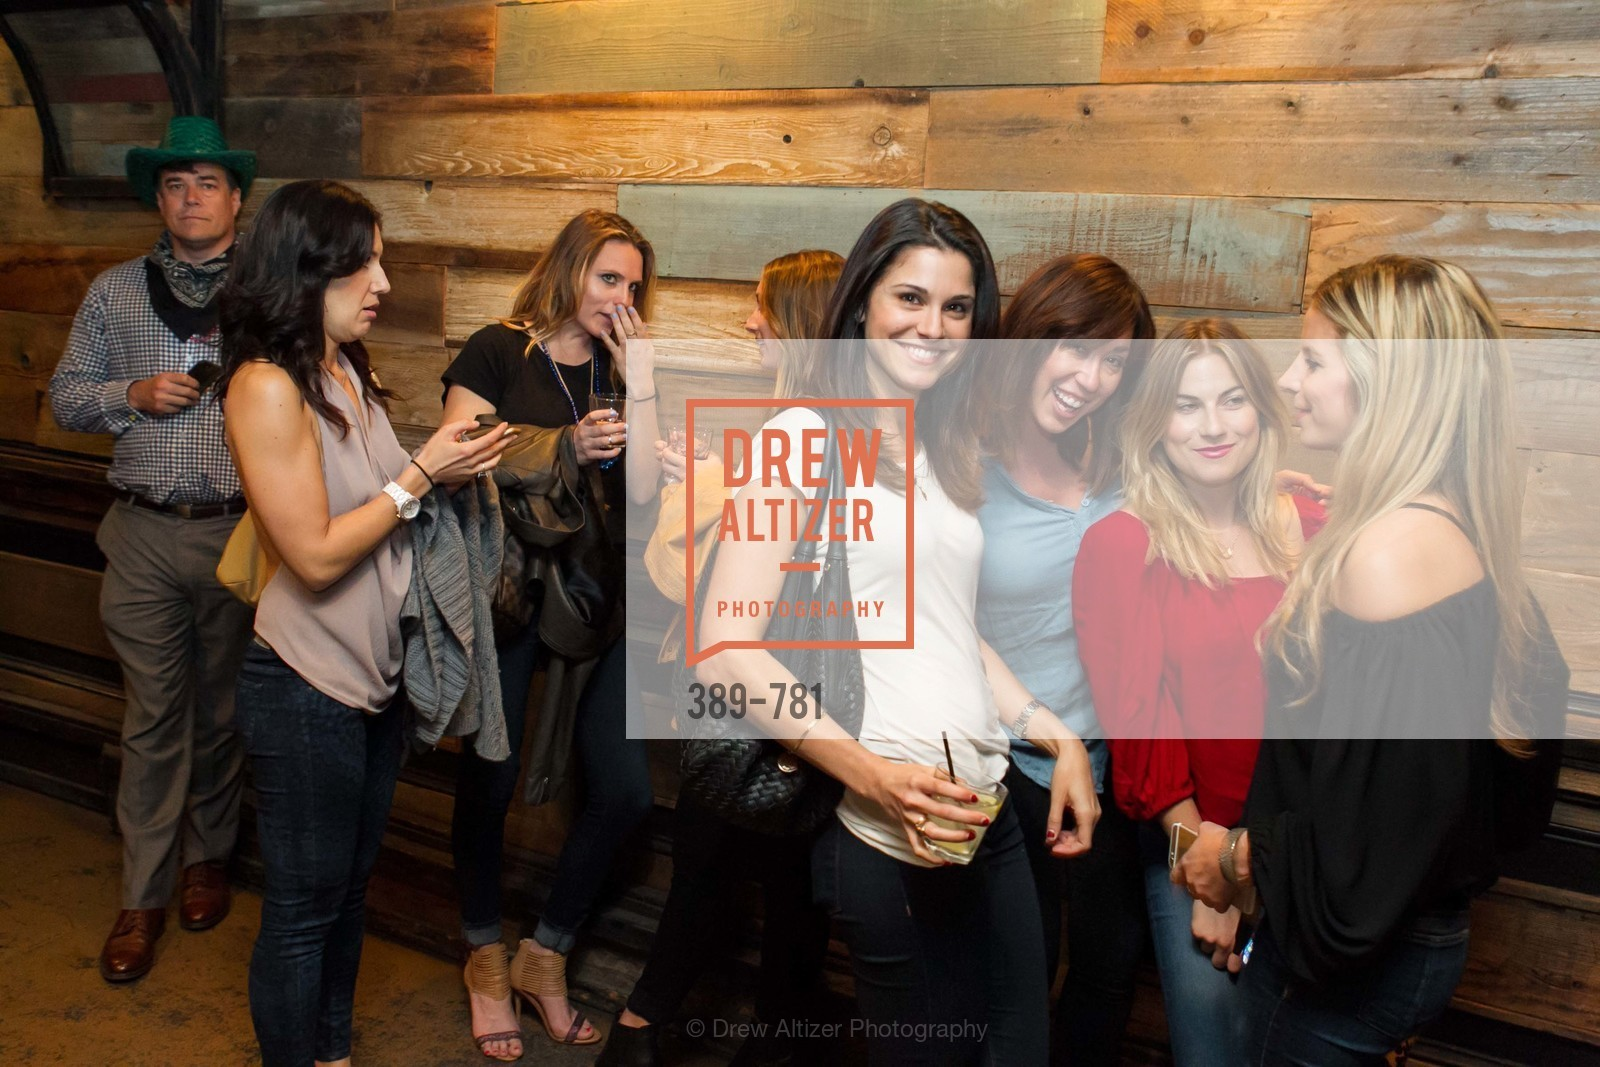 Allison Broude, Bailey Bachman, Katie Panas, Rooms That ROCK FOR CHEMO Fundraiser, US, April 2nd, 2015,Drew Altizer, Drew Altizer Photography, full-service agency, private events, San Francisco photographer, photographer california